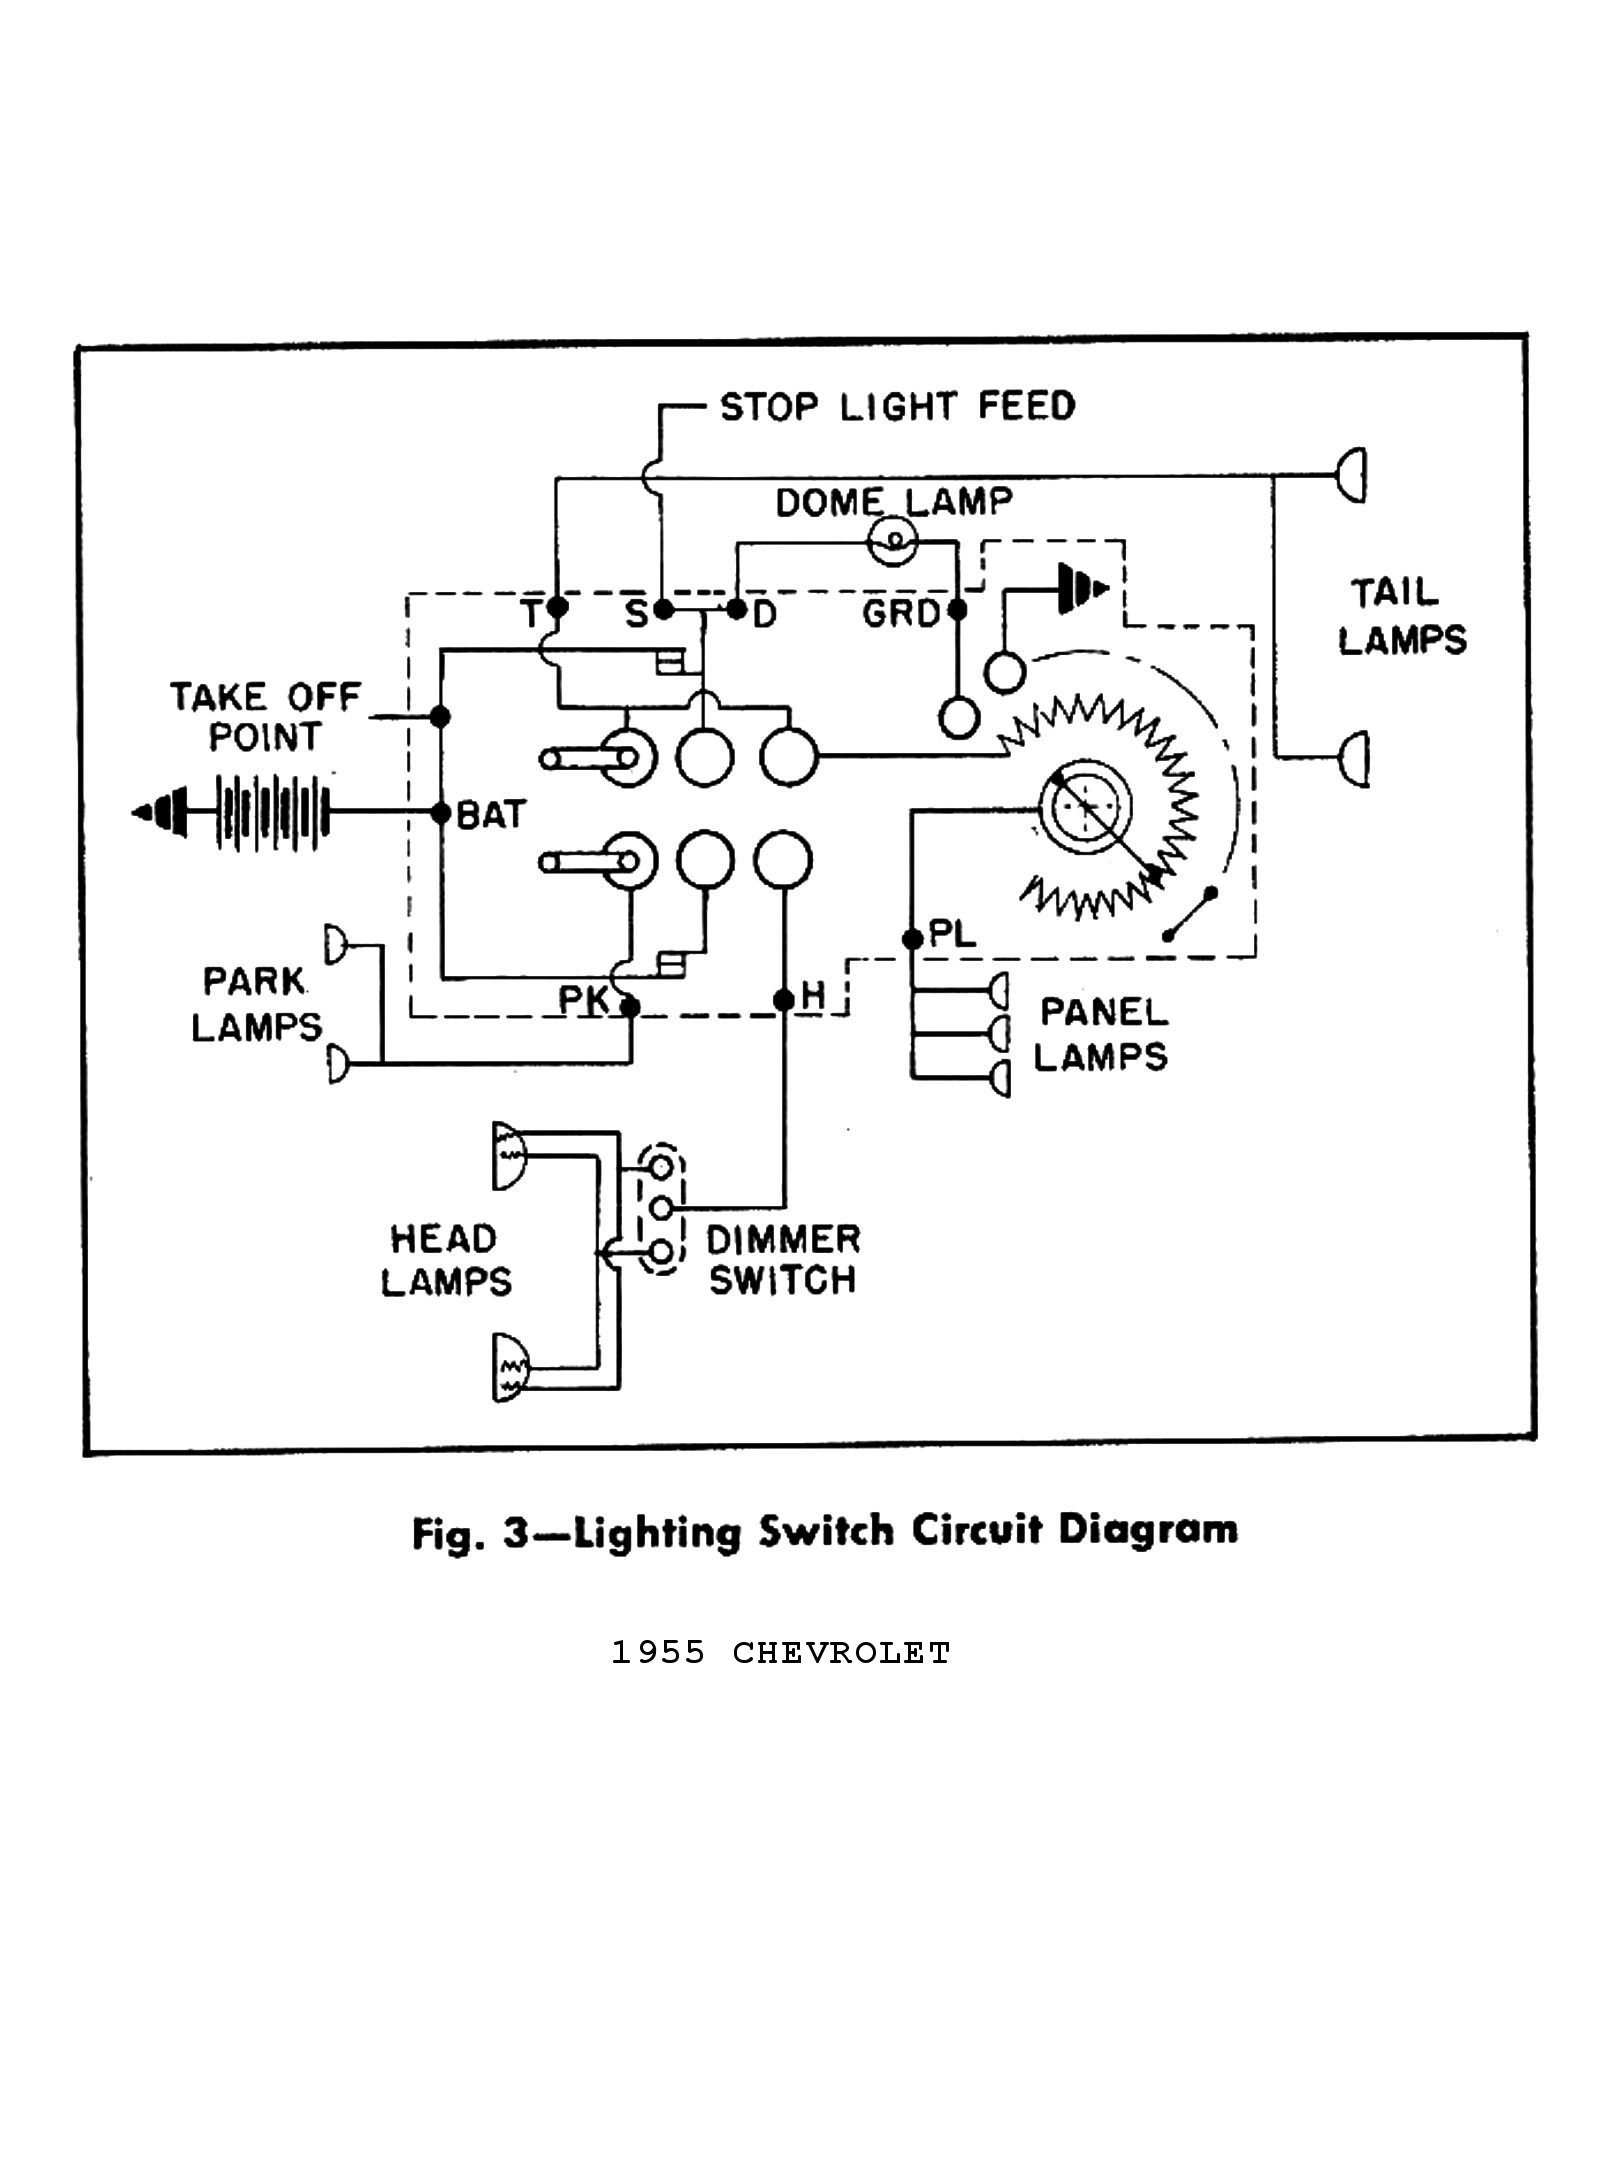 55ctsm1203 chevy wiring diagrams 1955 Chevy Headlight Wiring Diagram at reclaimingppi.co